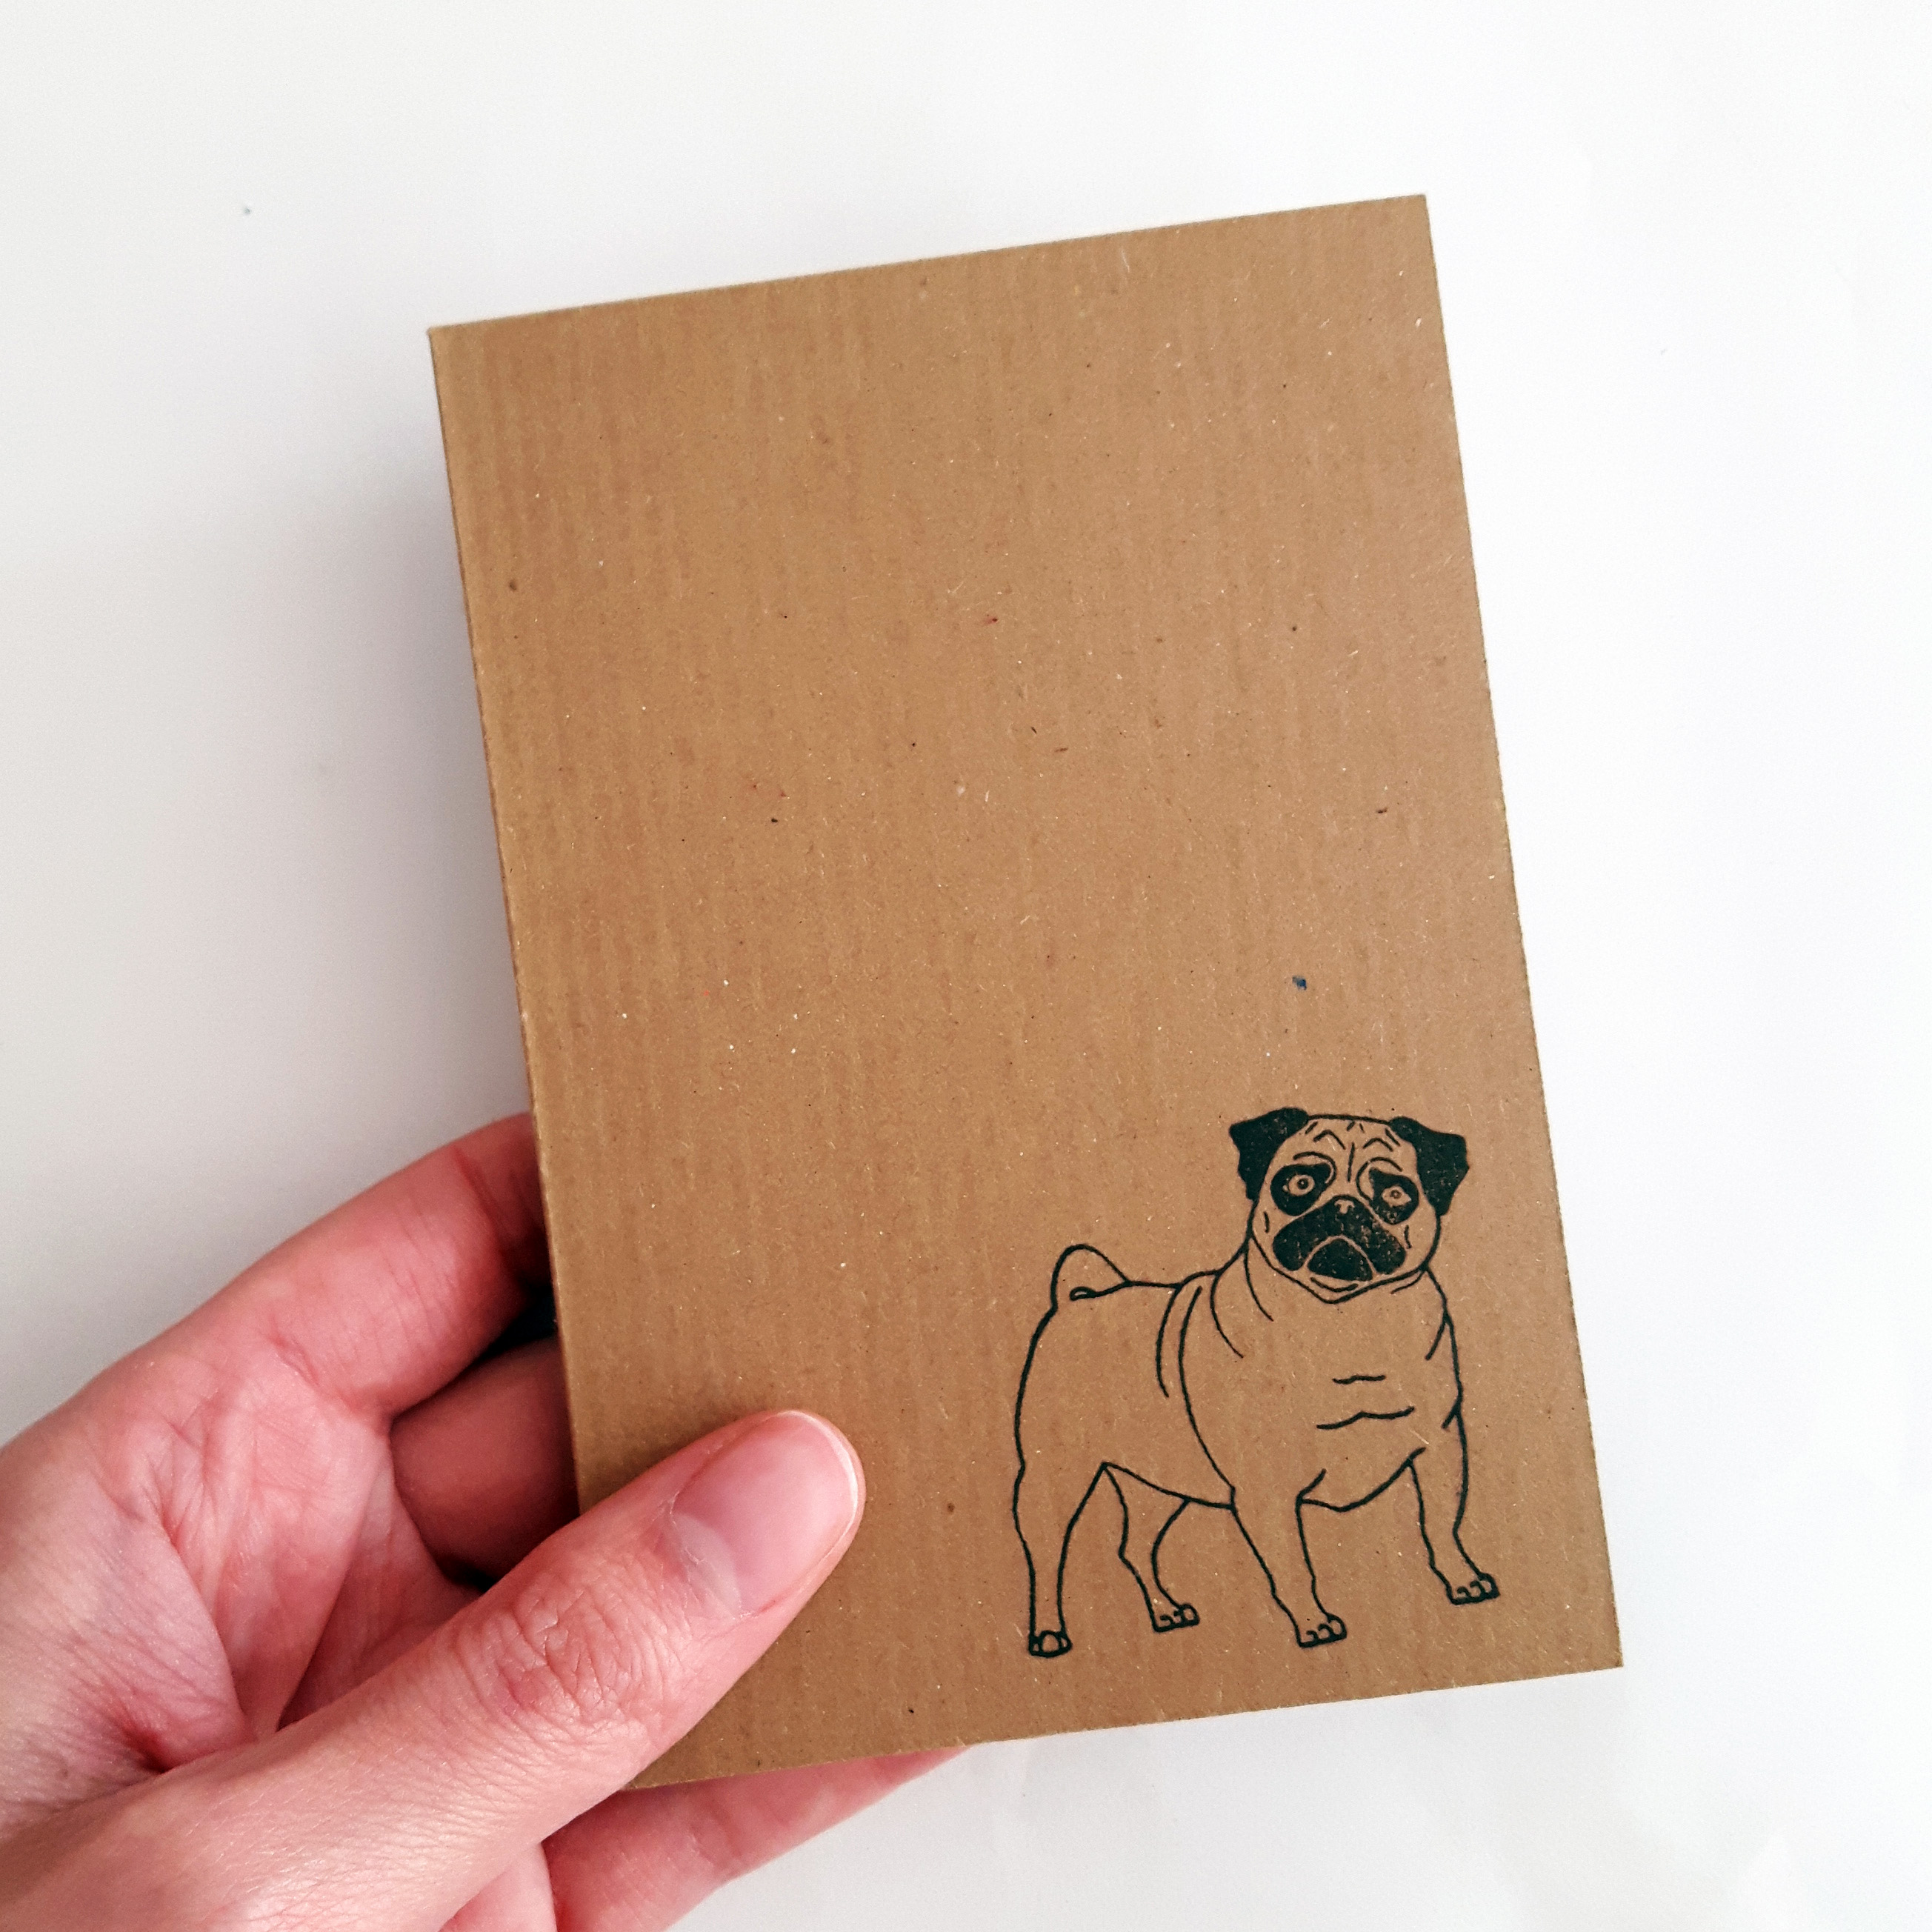 pug notebook, held in a hand, to show the passport size